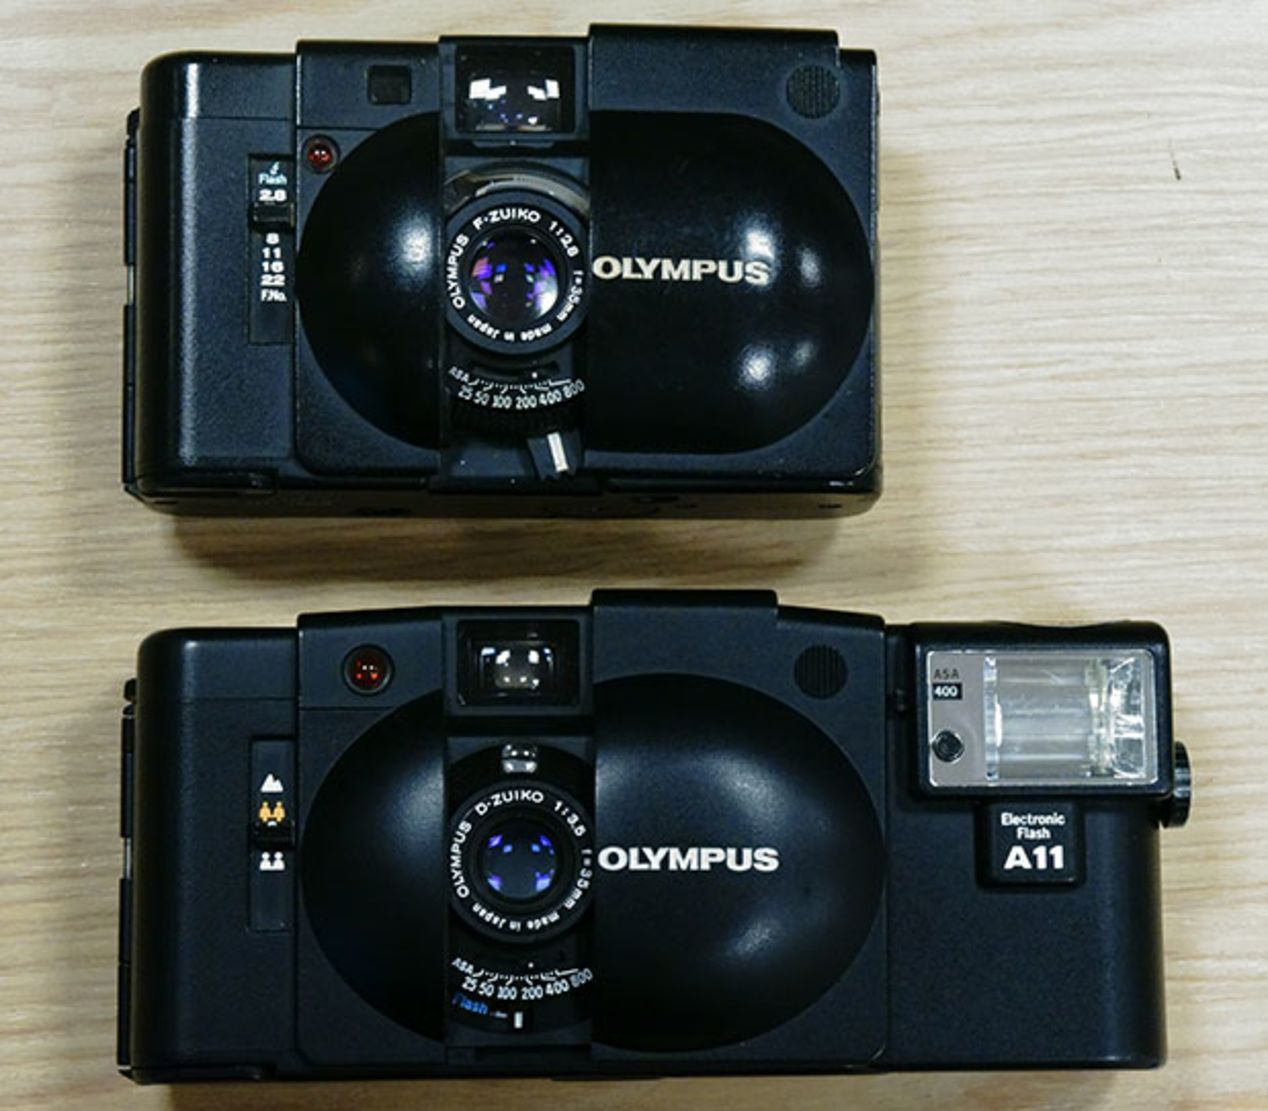 Olympus XA, typically costing $65-75 with dedicated flash.